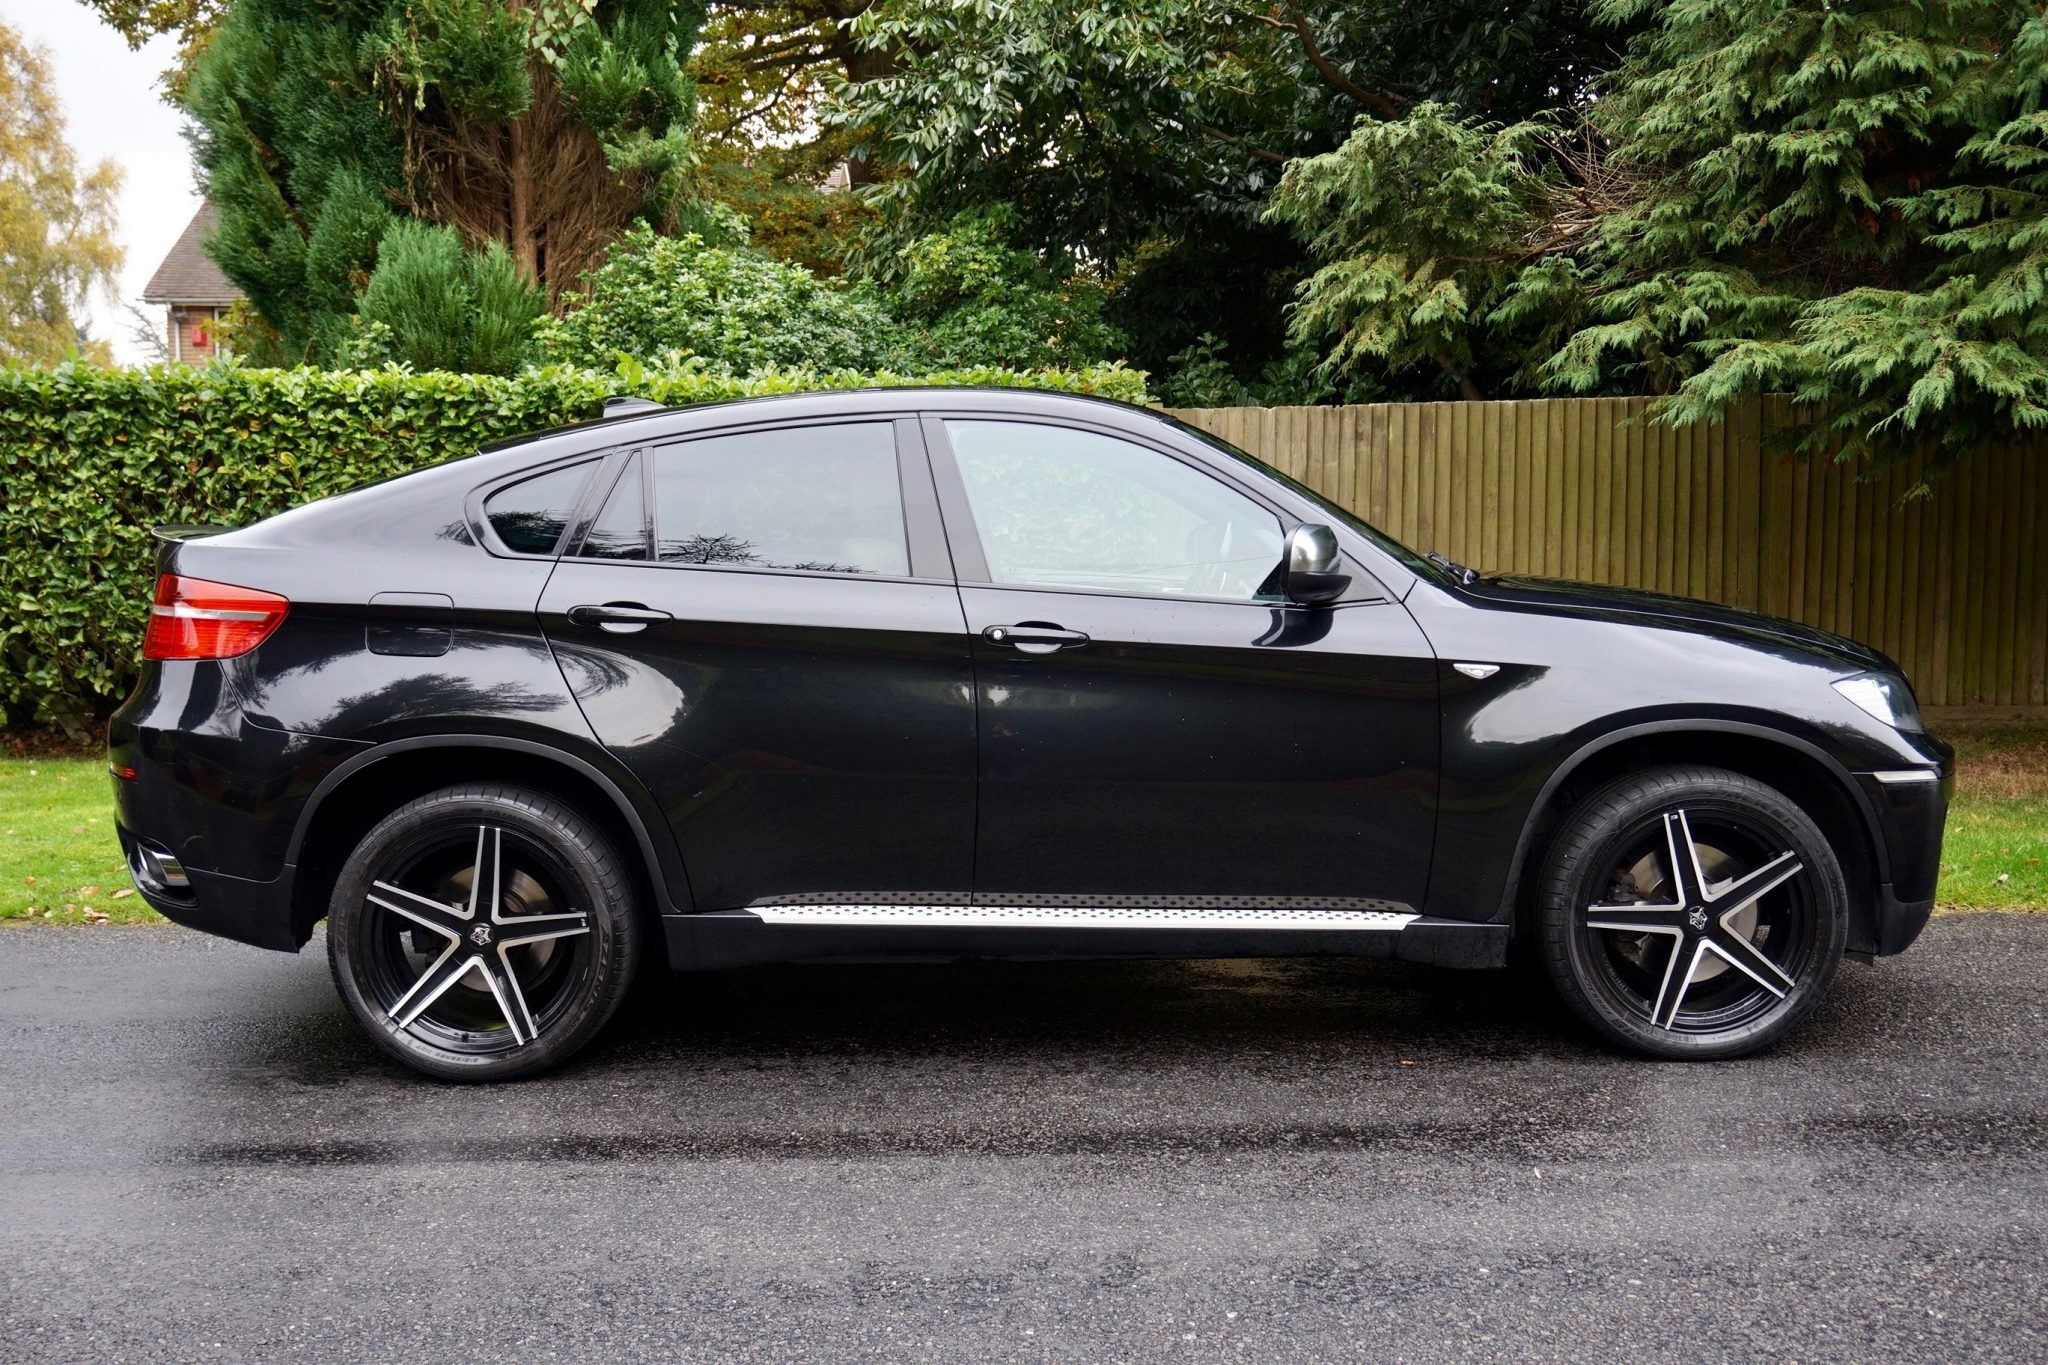 Bmw X6 Xdrive40d Kahn M50 Replica Dms Cars